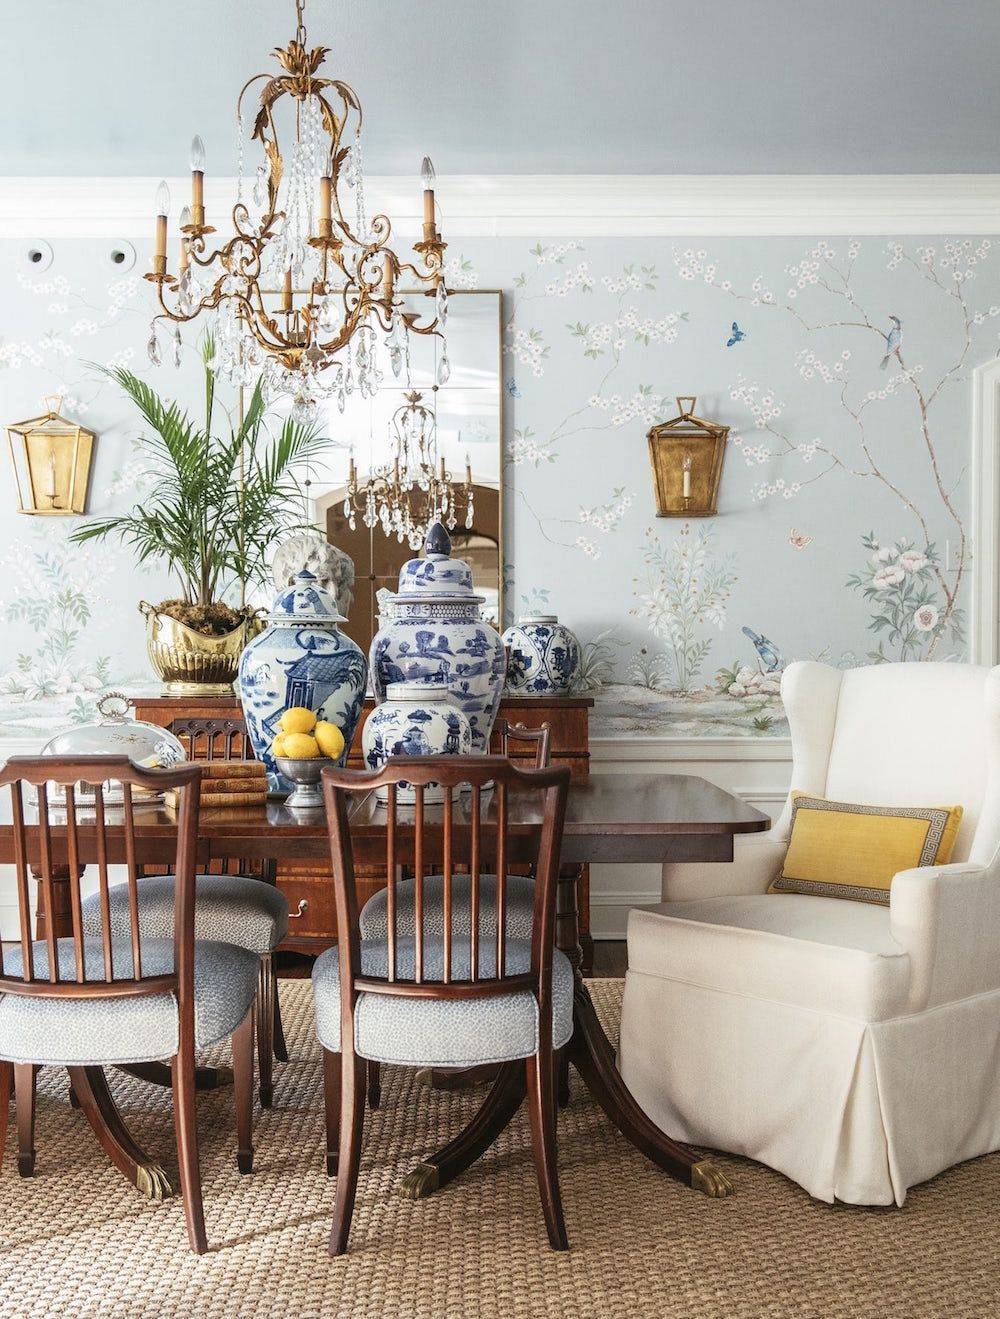 Affordable Chinoiserie Wallpaper Panels & Murals + Sources ...